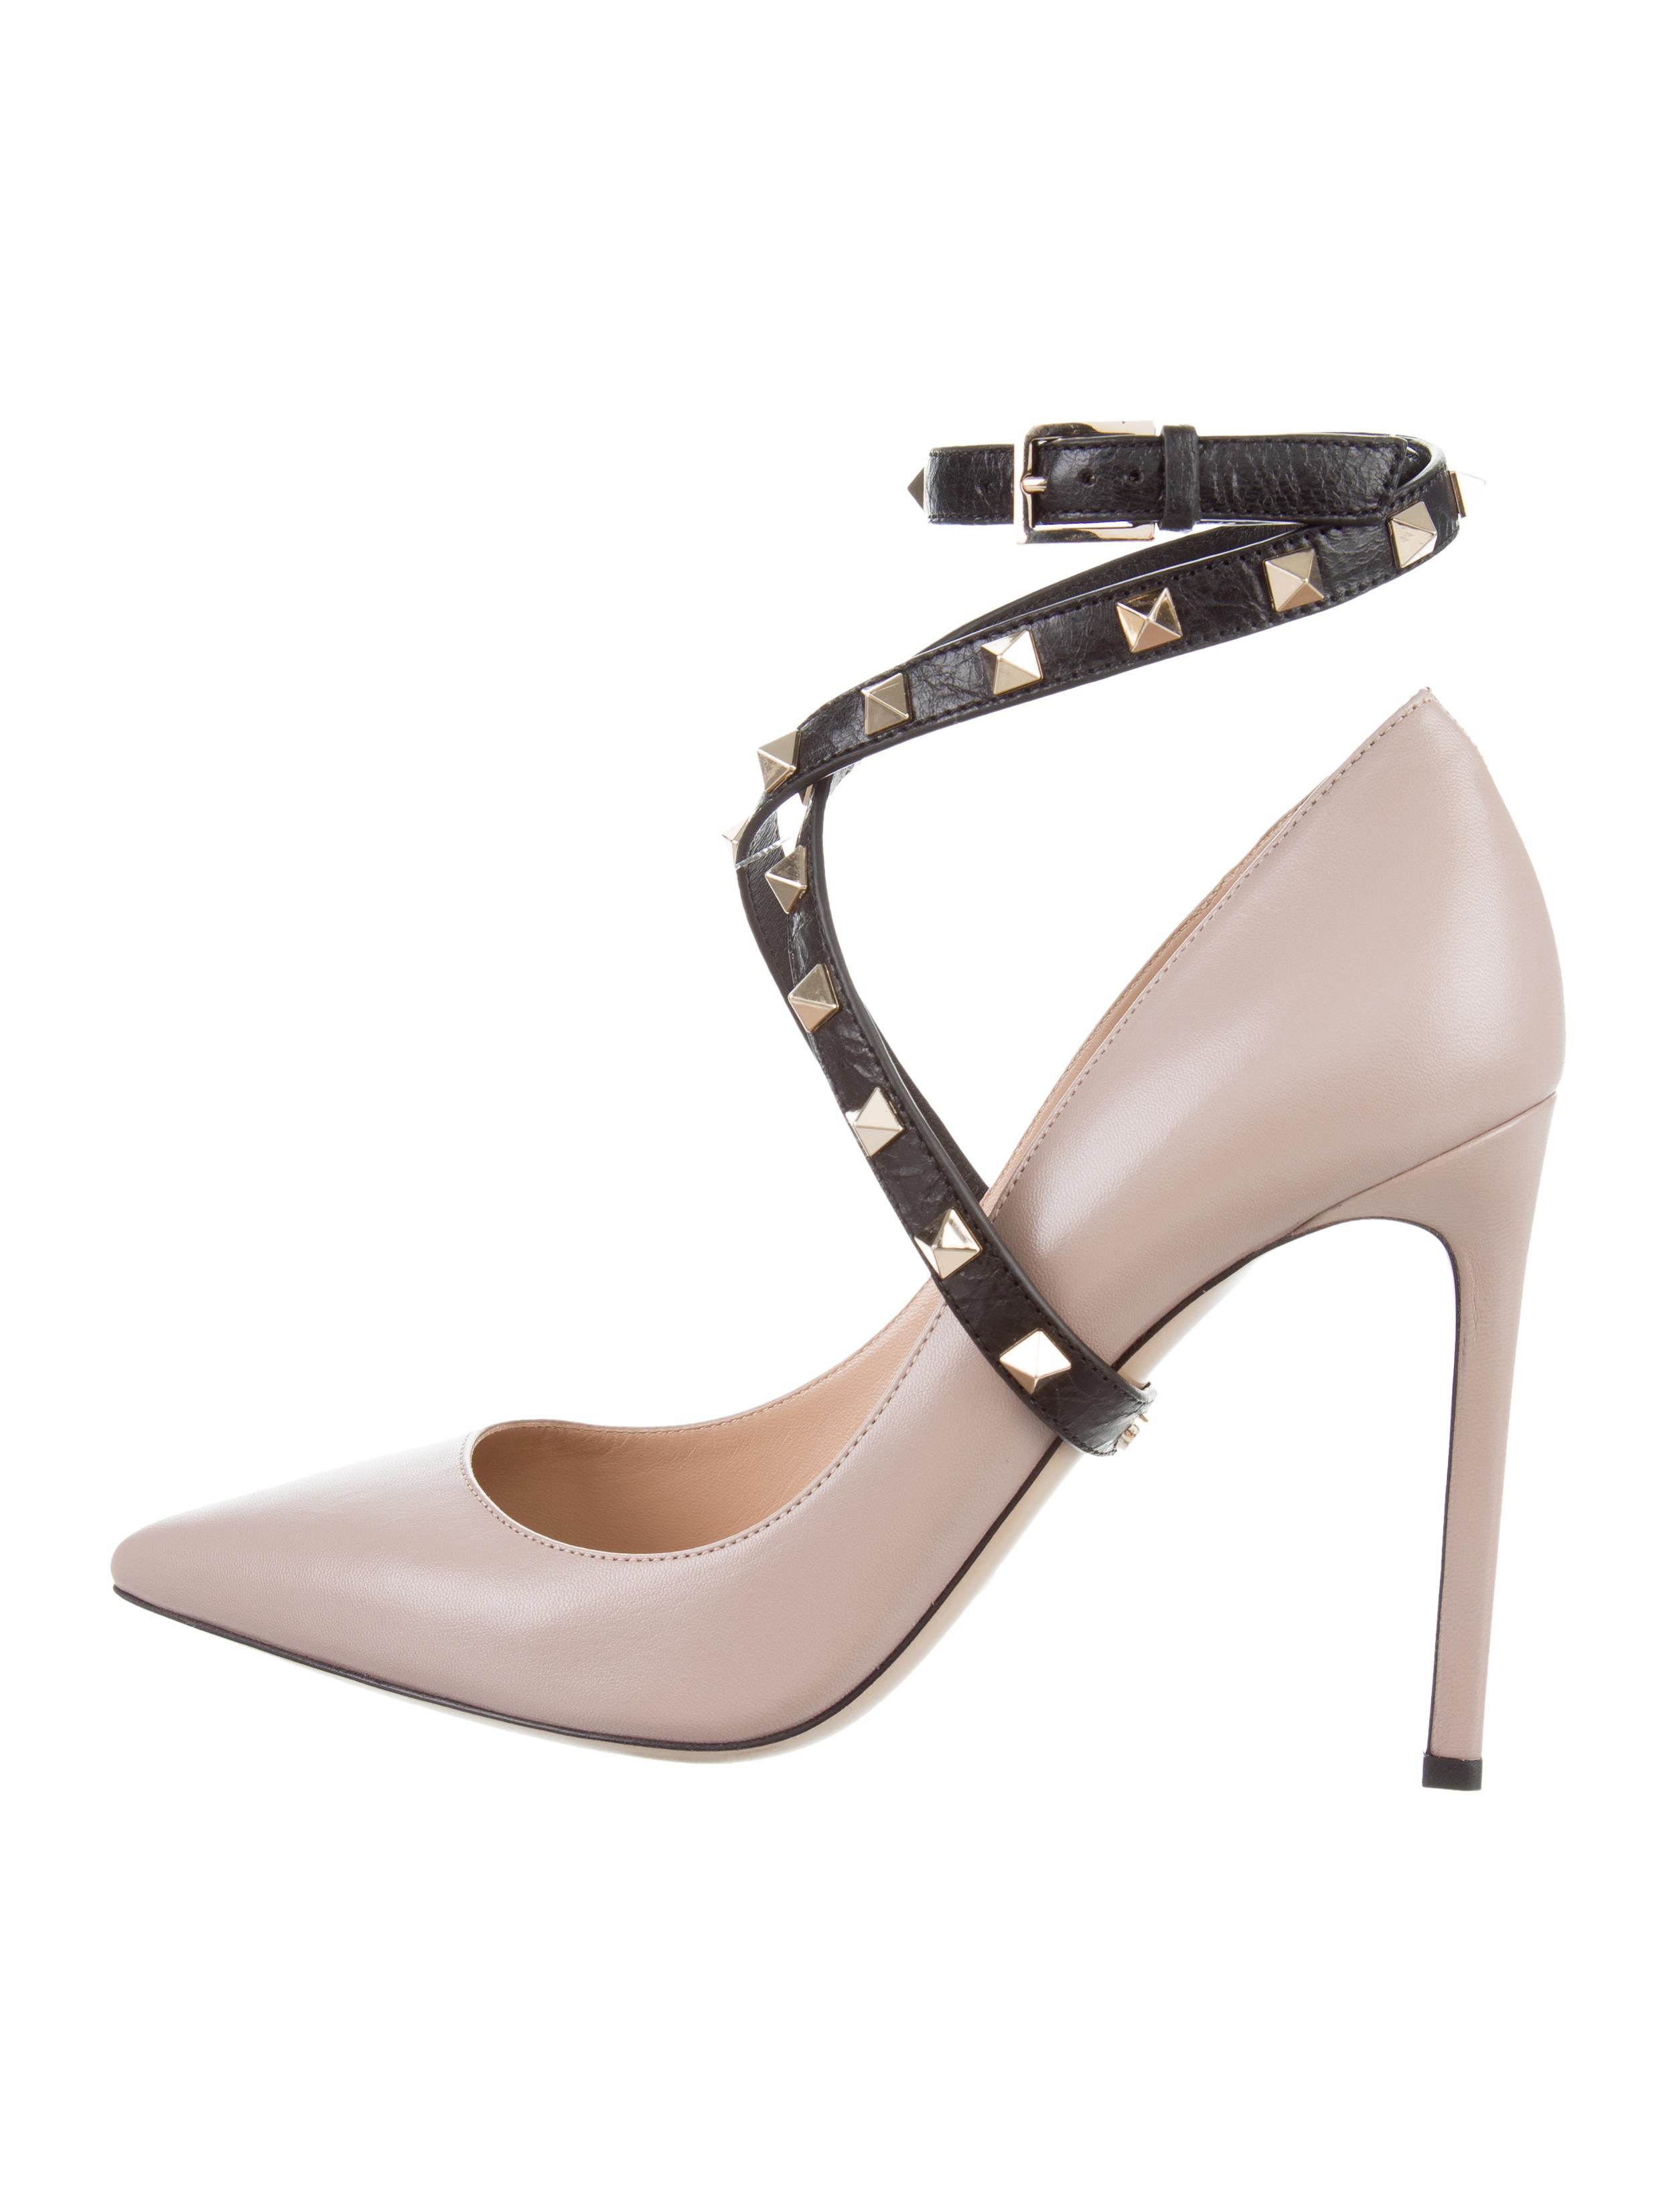 Valentino Rockstud Mary Jane Pumps w/ Tags for sale pictures for sale prices for sale 65RwEDa